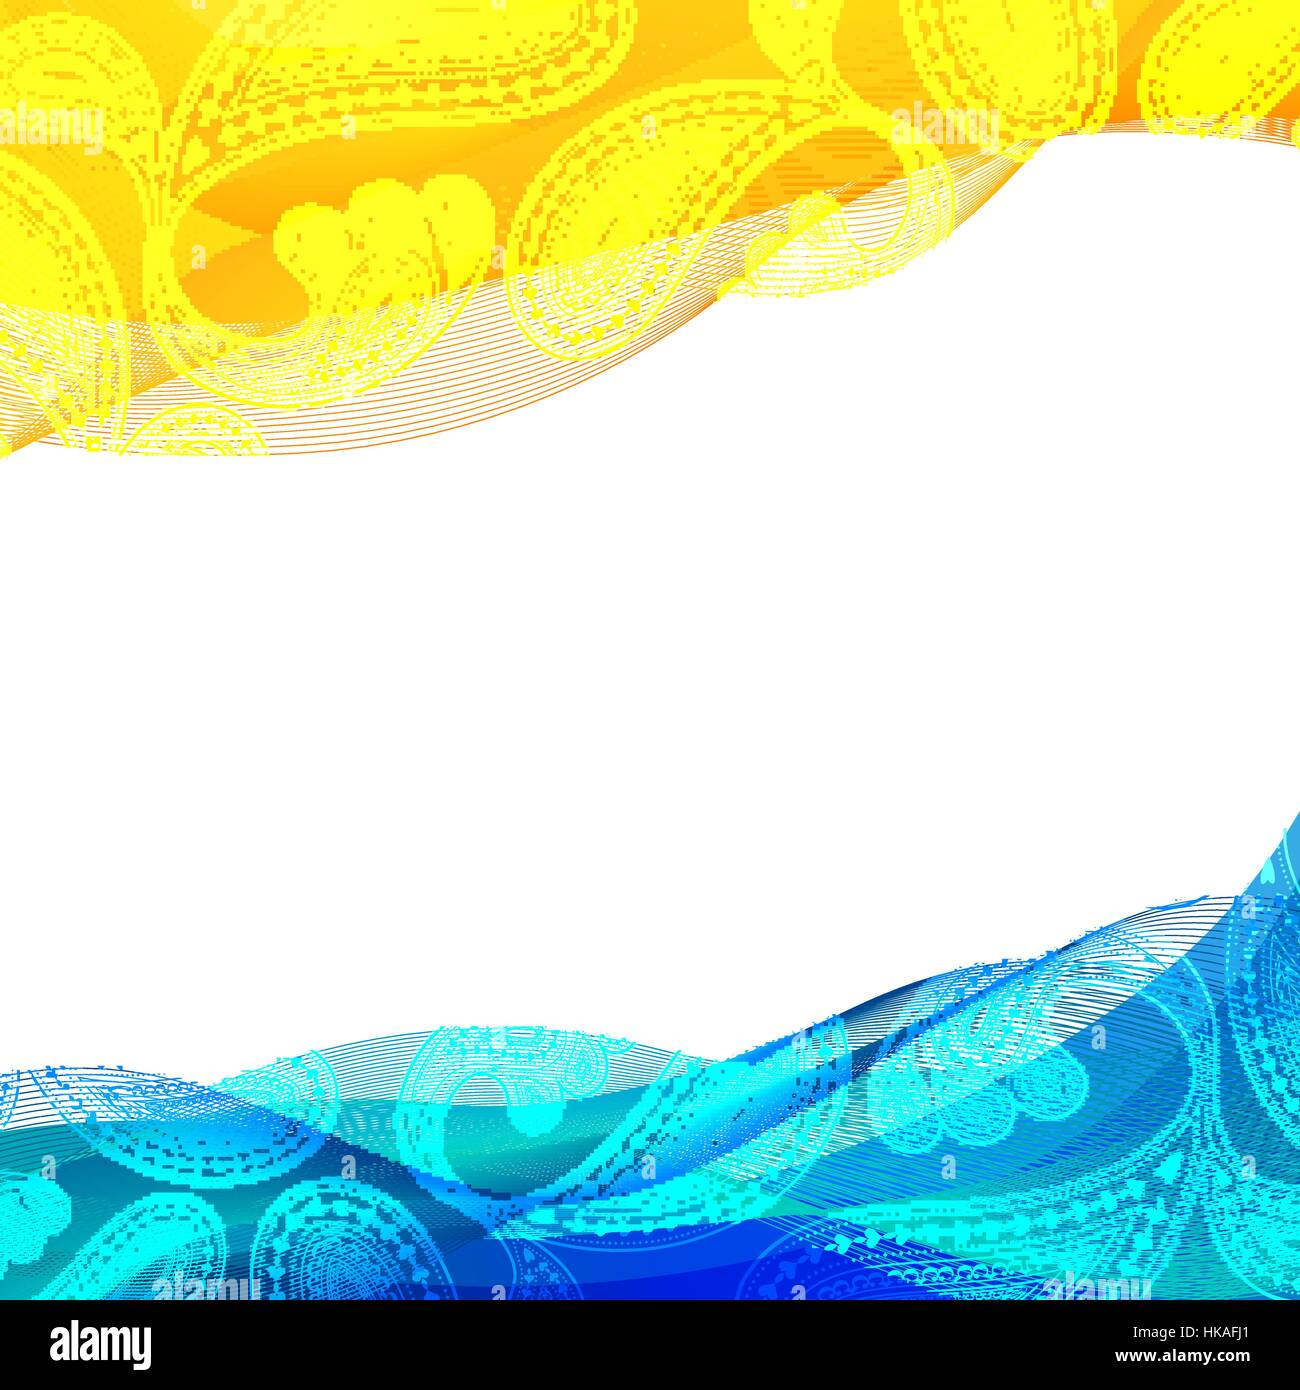 Yellow Transaparent Background With Line Wiring Diagrams Marker Pulse Generator Circuit Diagram Tradeoficcom Abstract Blue And Transparent Waved Stock Rh Alamy Com Stripes Wall